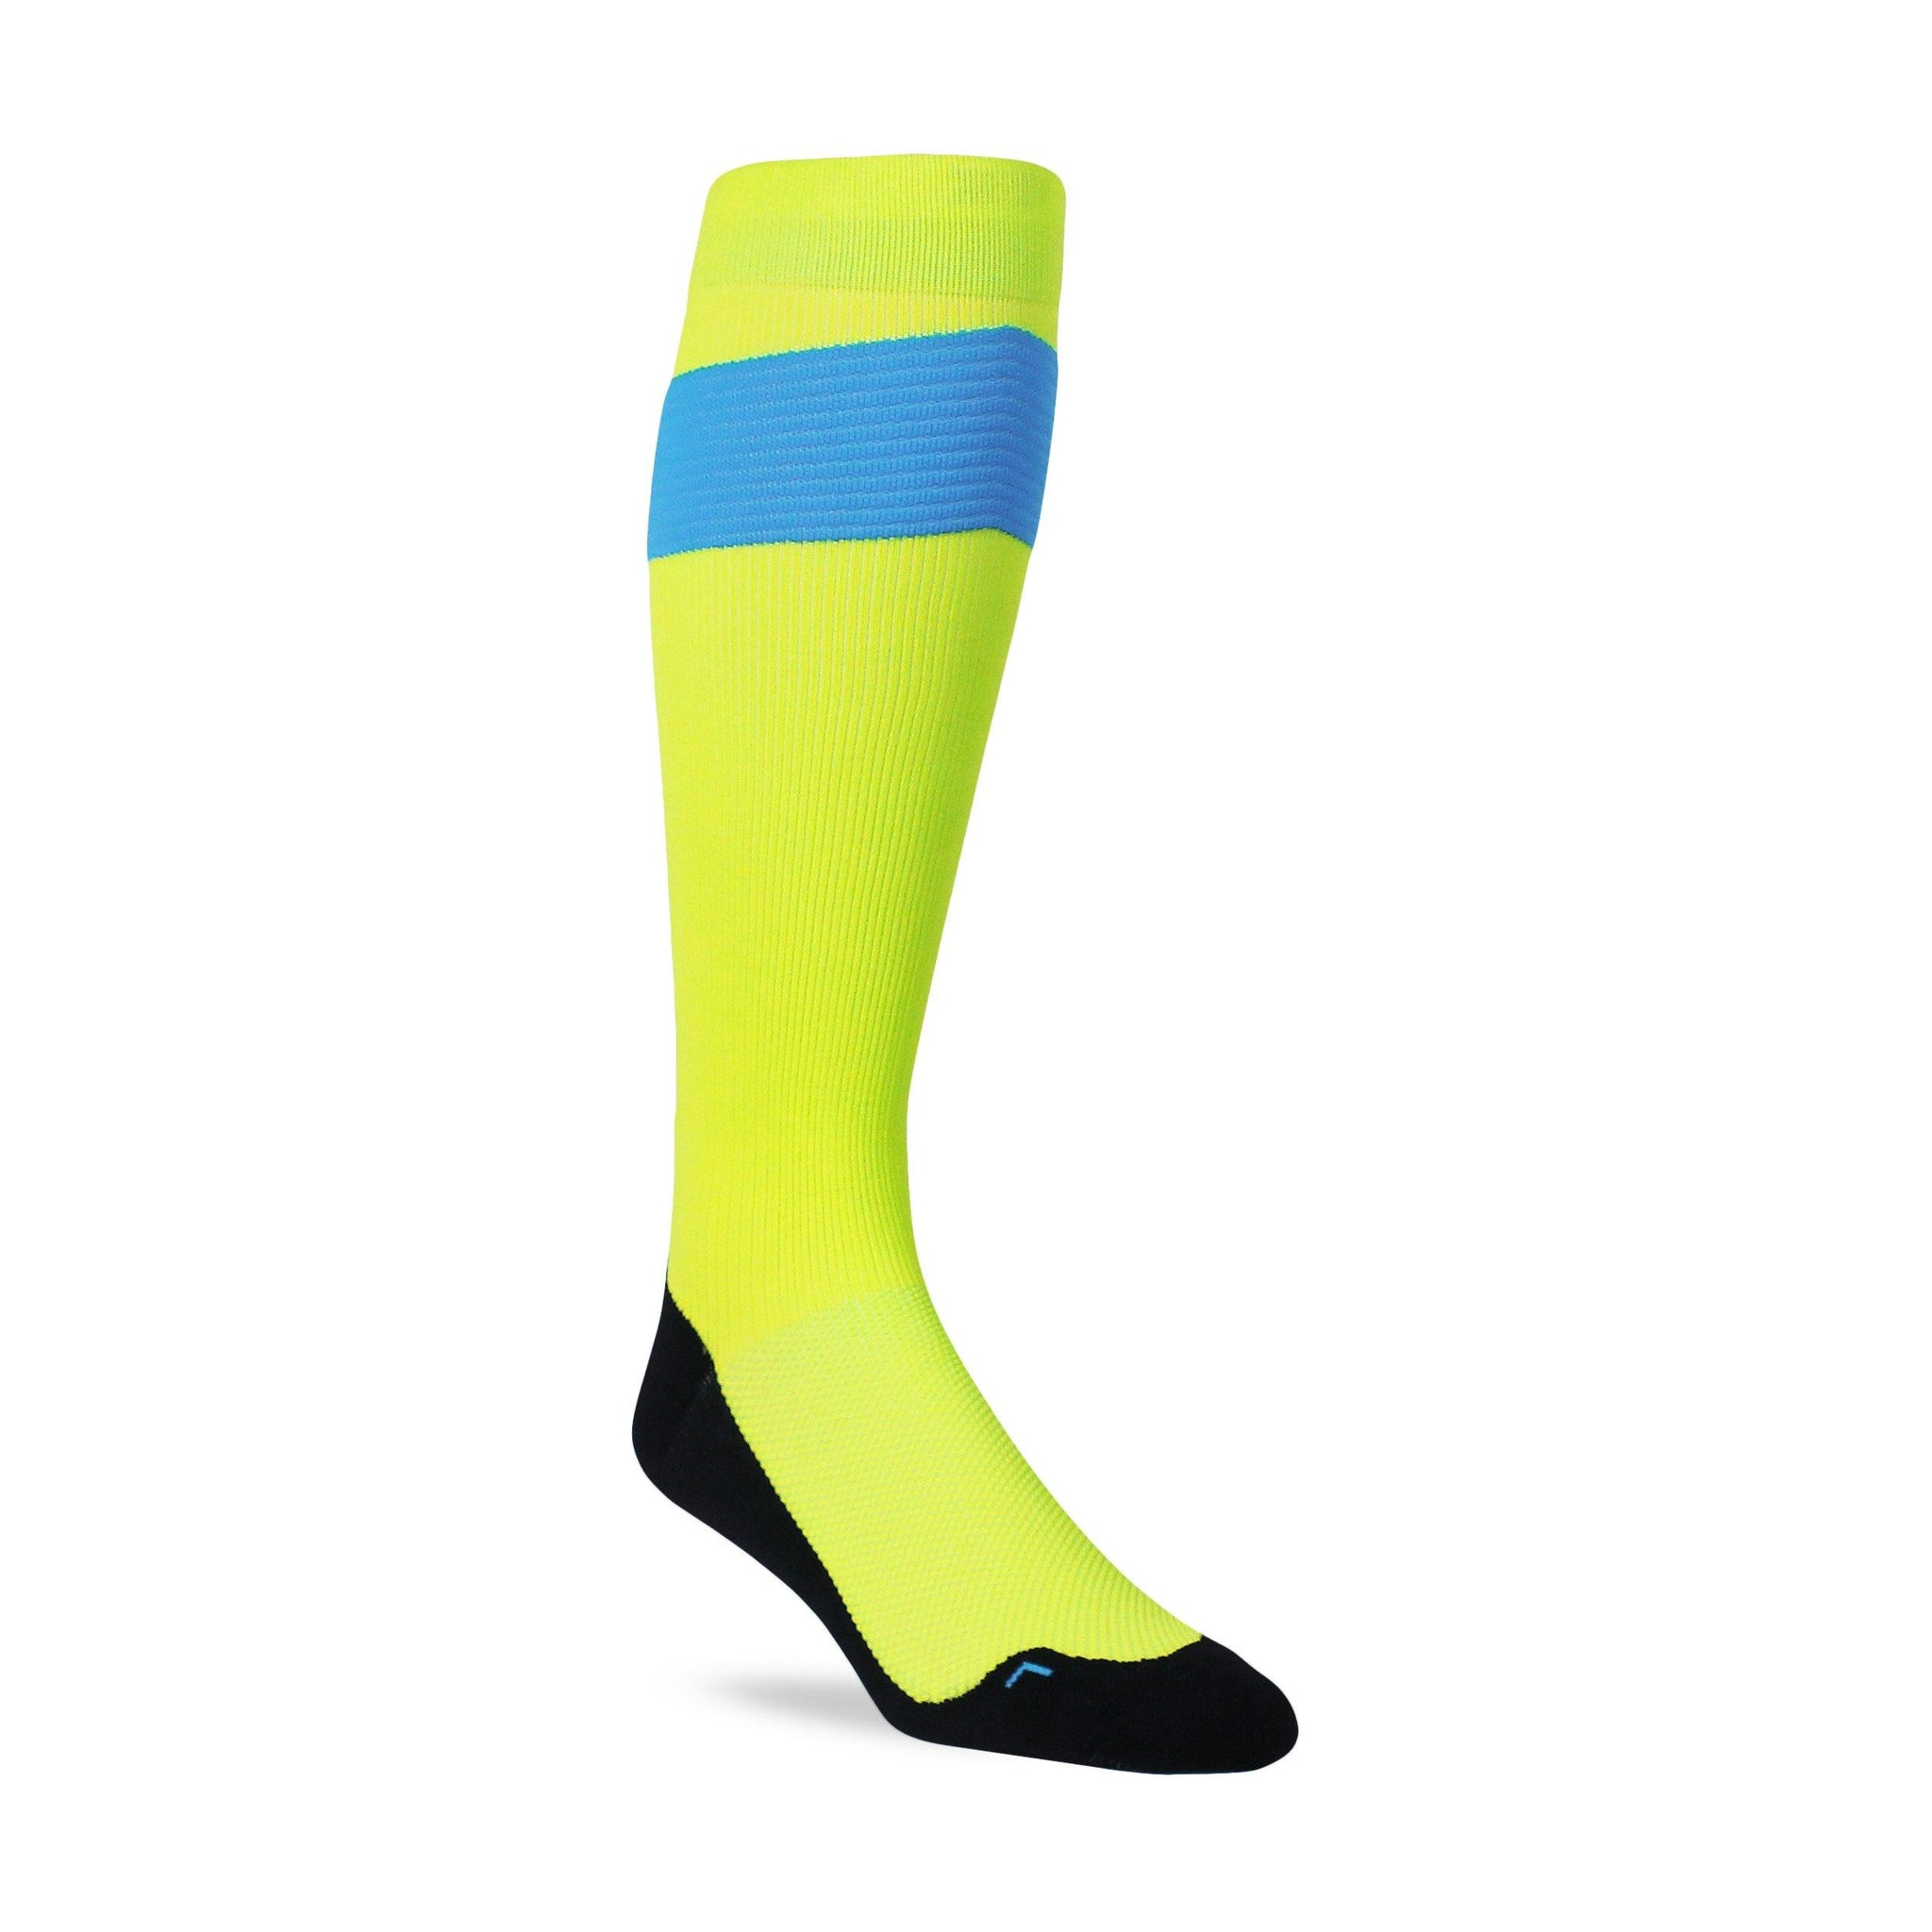 Performance OTC - Graduated Compression Socks